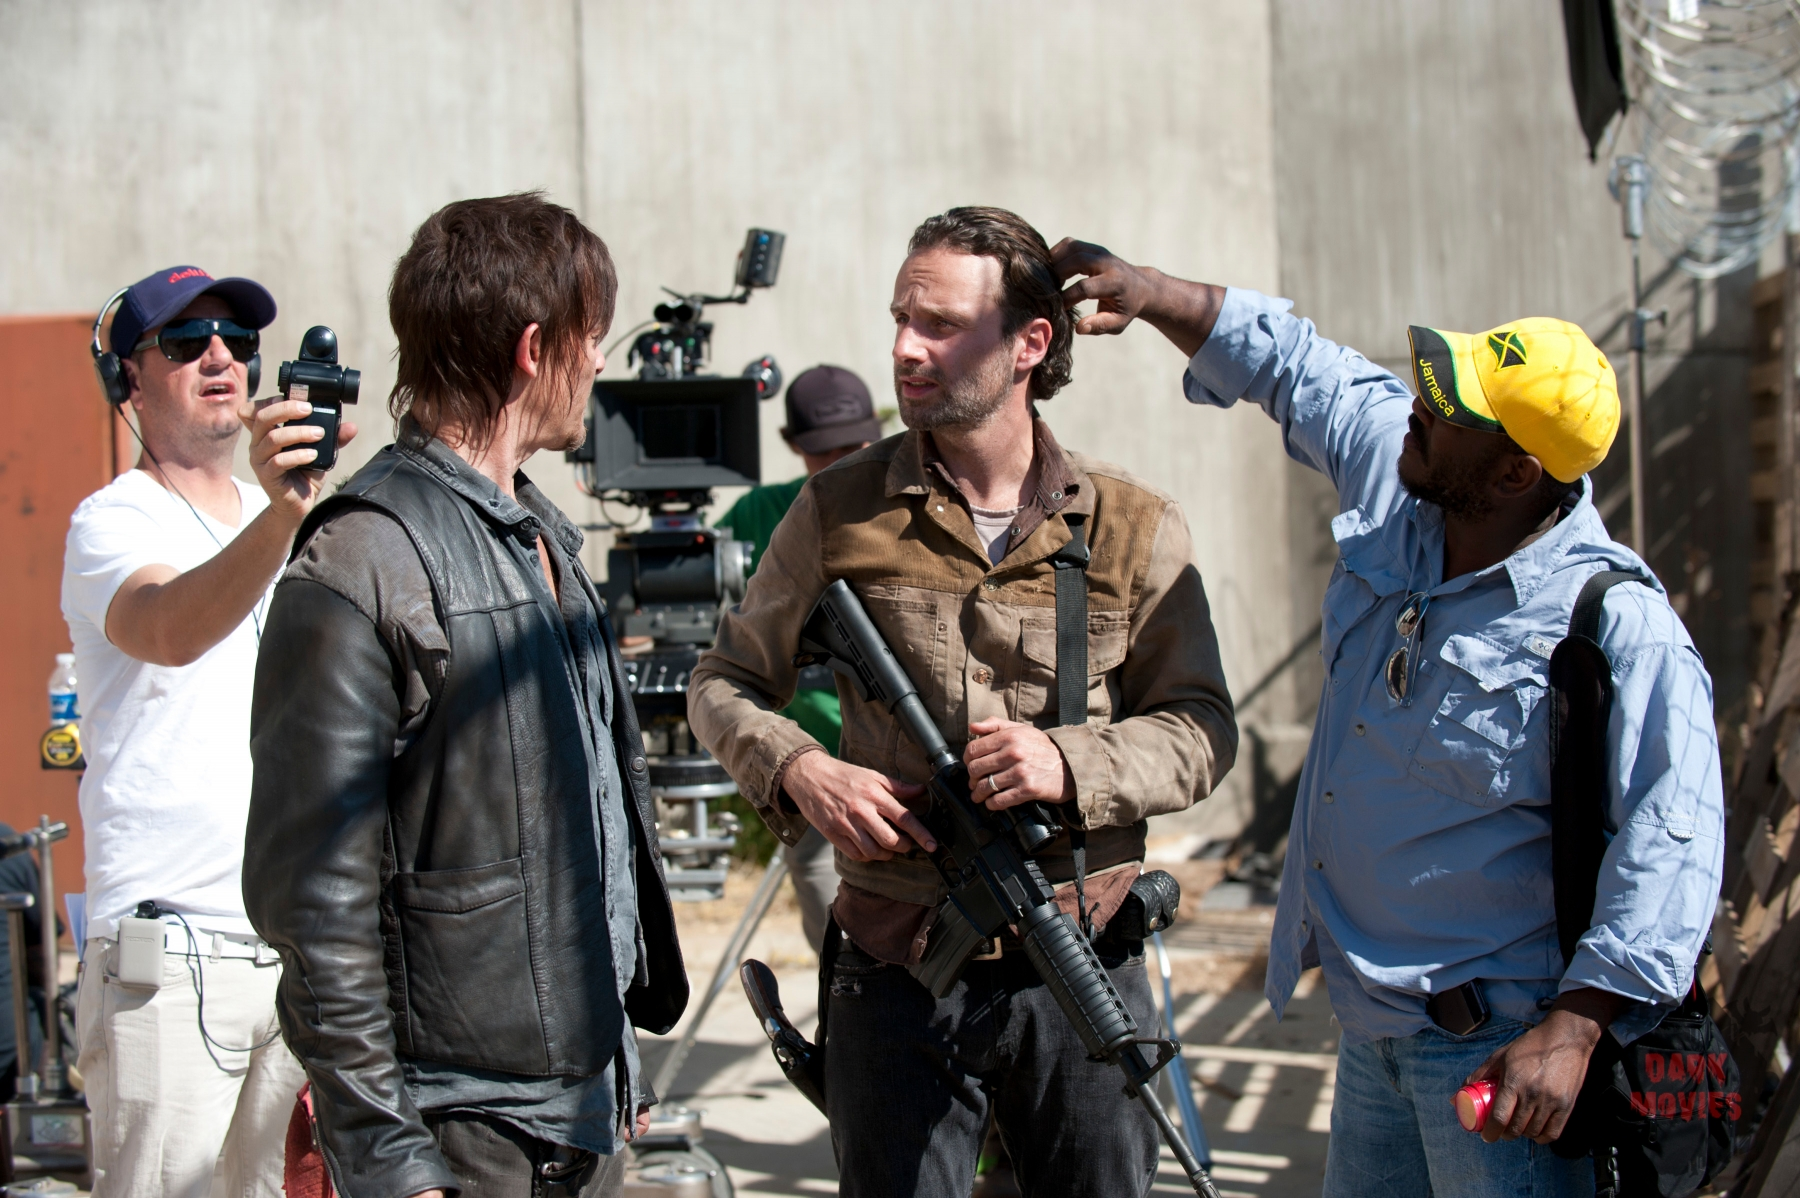 Daryl Dixon (Norman Reedus) and Rick Grimes (Andrew Lincoln) - The Walking Dead - Season 3, Episode 15 - Photo Credit: Gene Page/AMC